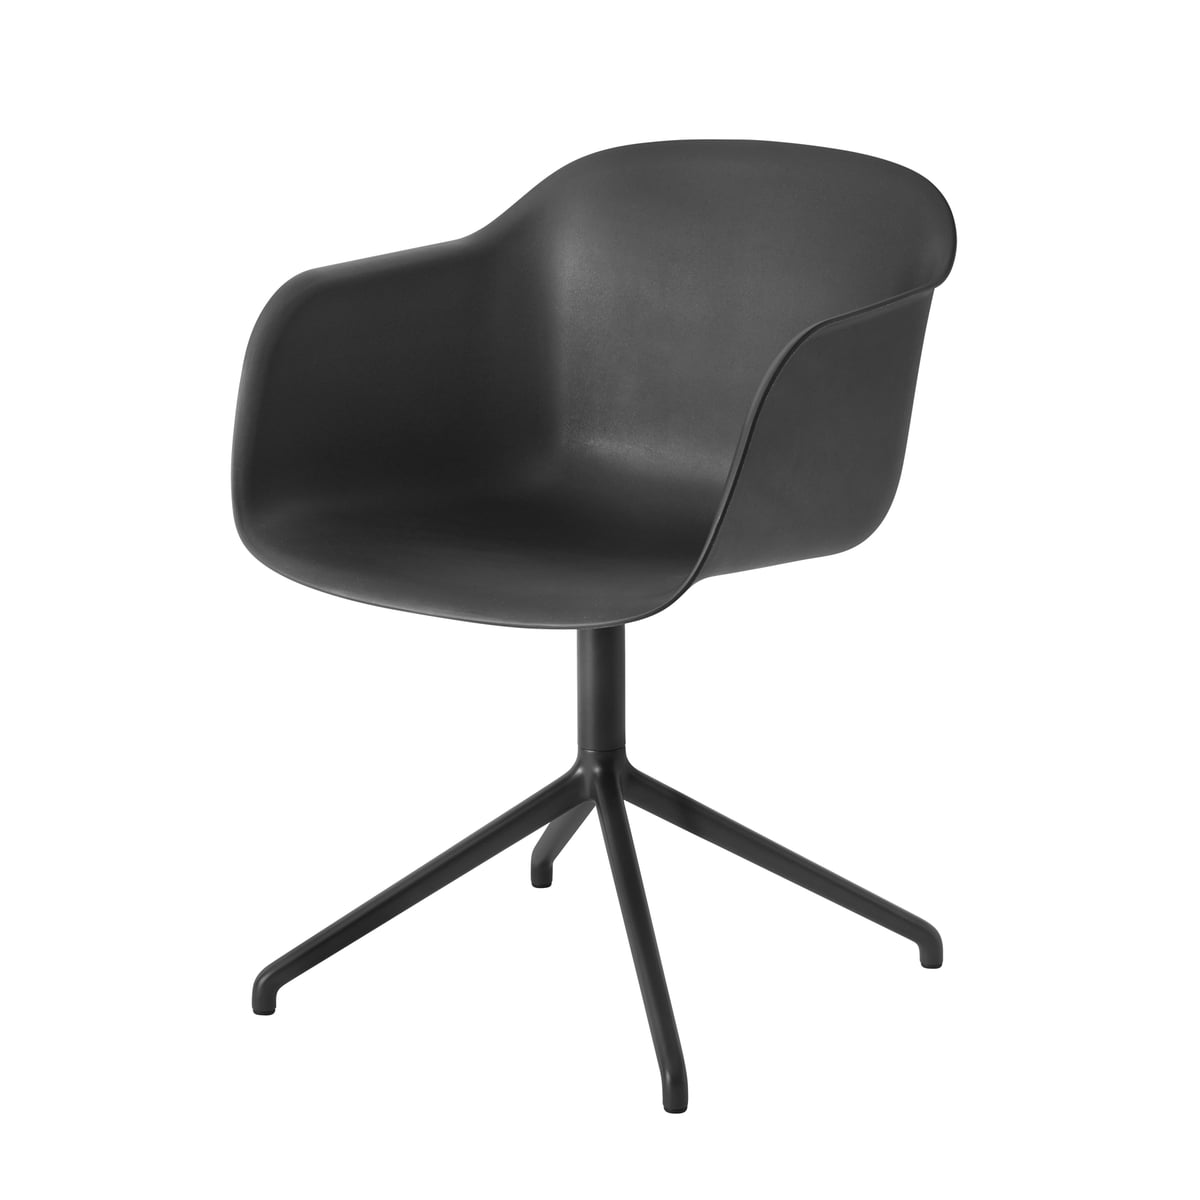 Muuto   Fiber Chair   Swivel Base, Black / Black